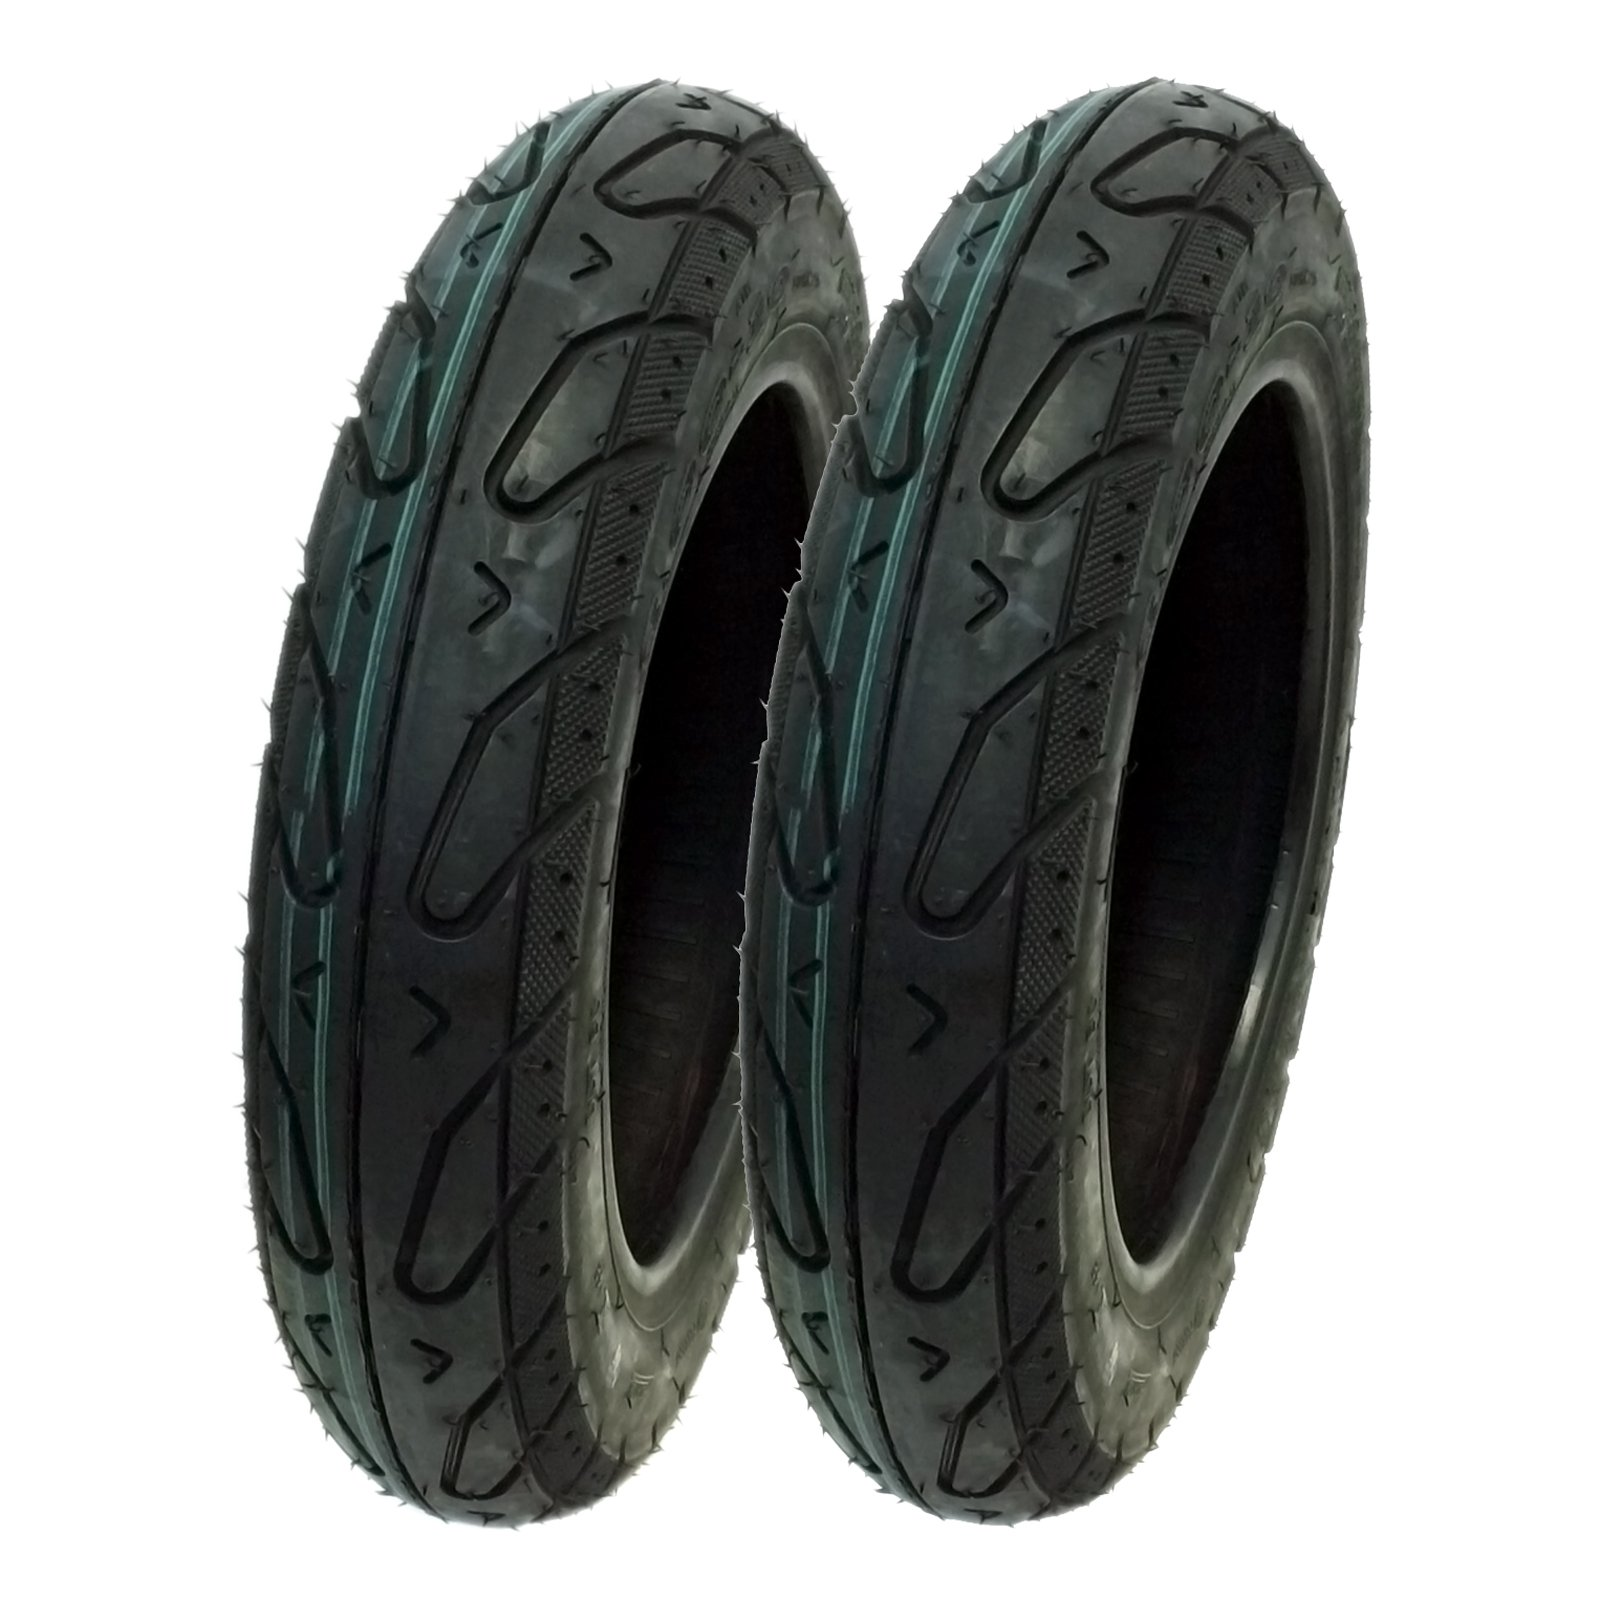 SET OF TWO: Tire Size 3.00-10 Tubeless Front/Rear Motorcycle Scooter Moped